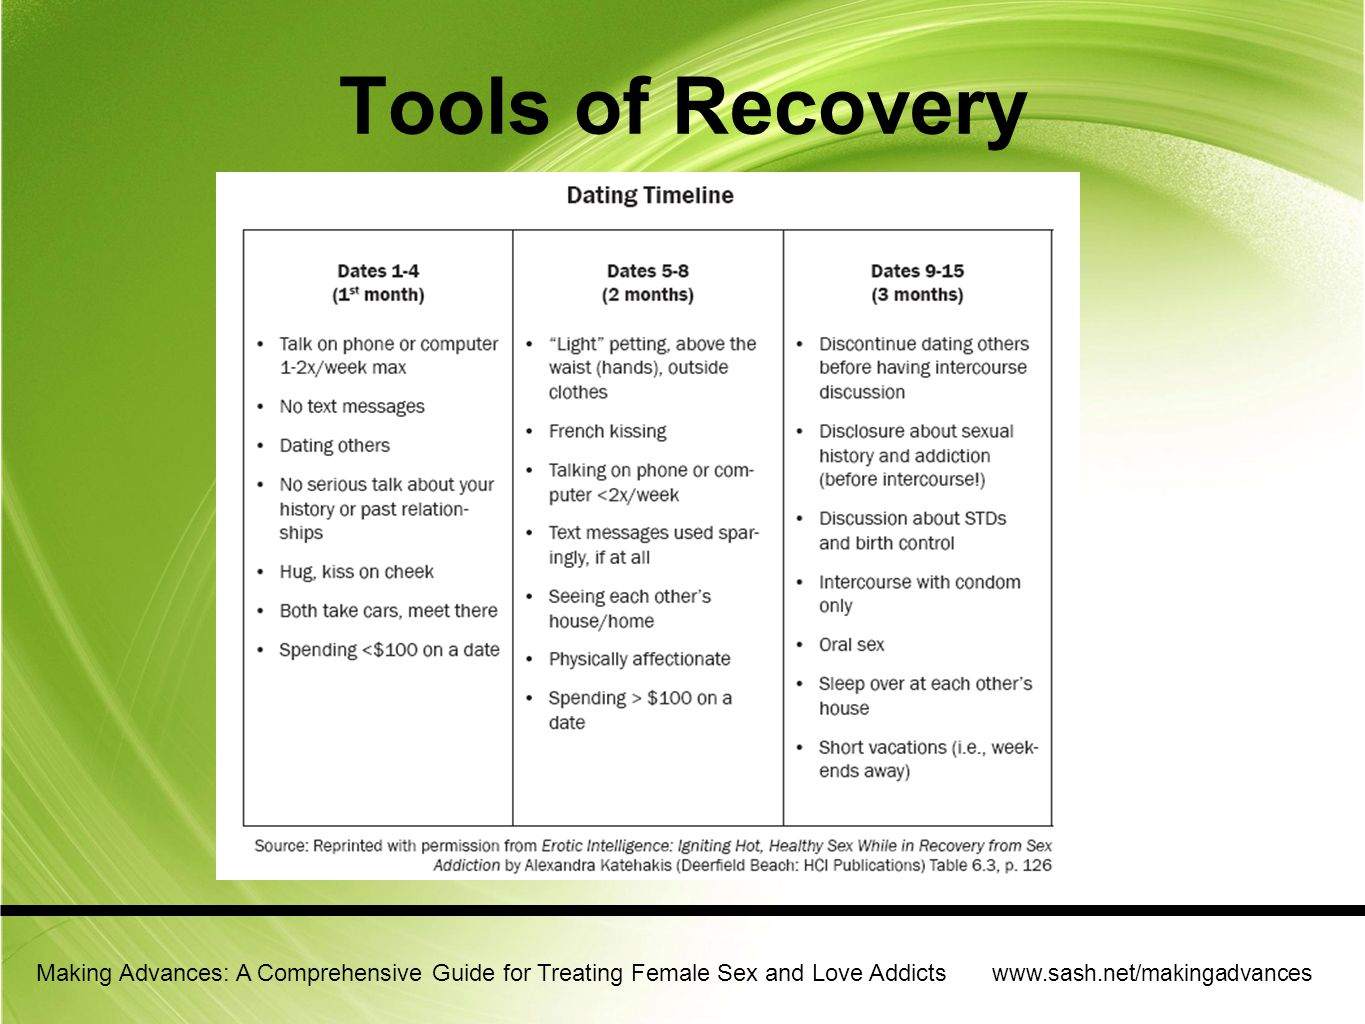 Tools of Recovery